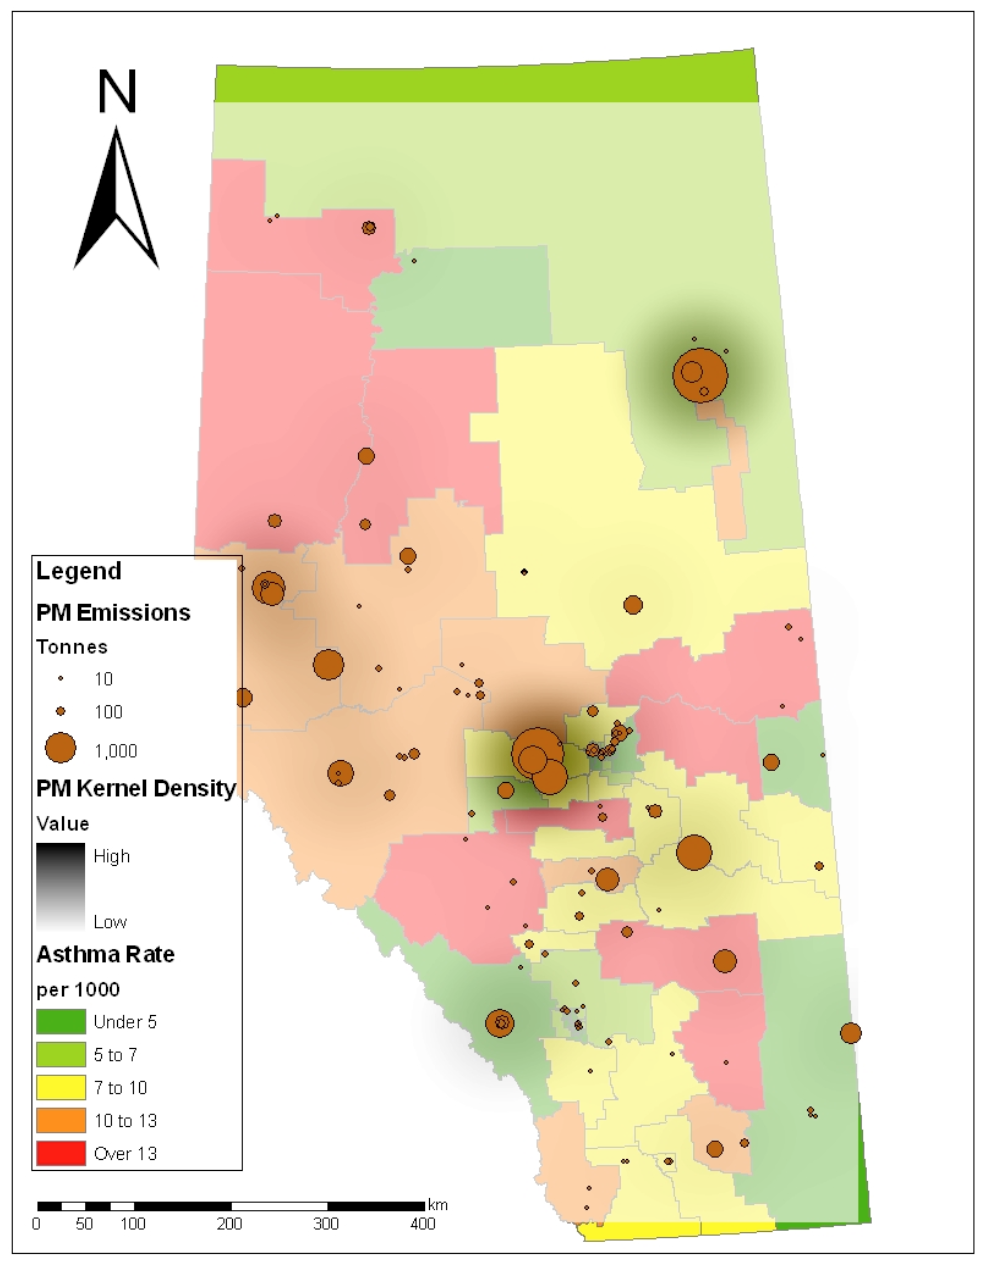 Particulate Matter (PM2.5) Kernel Density Analysis and Asthma Rates in Alberta